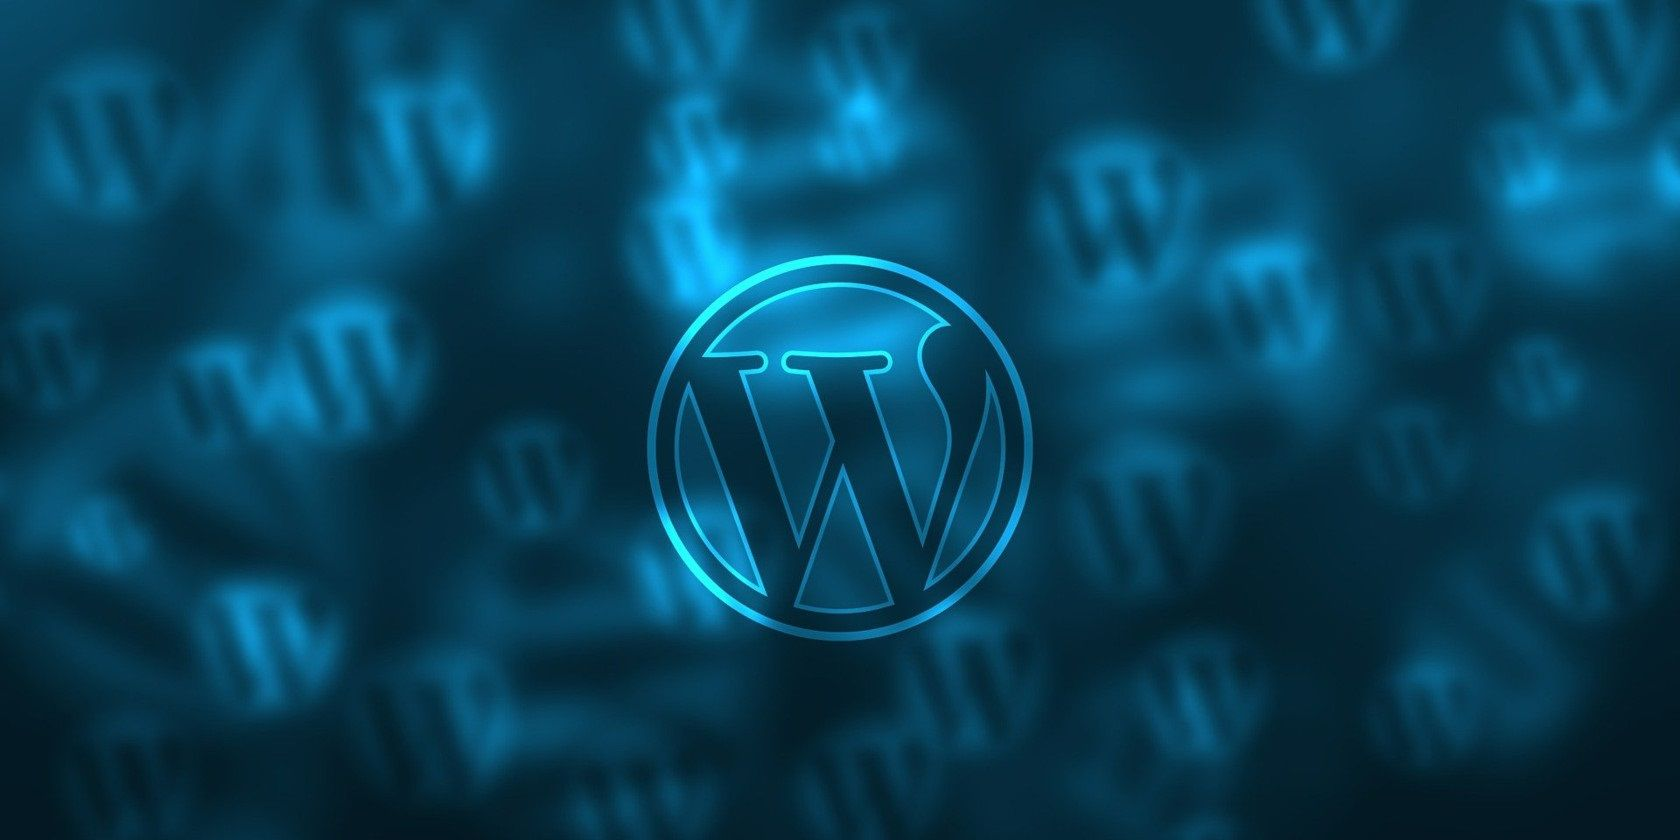 How to Build and Host a WordPress Website in 5 Simple Steps